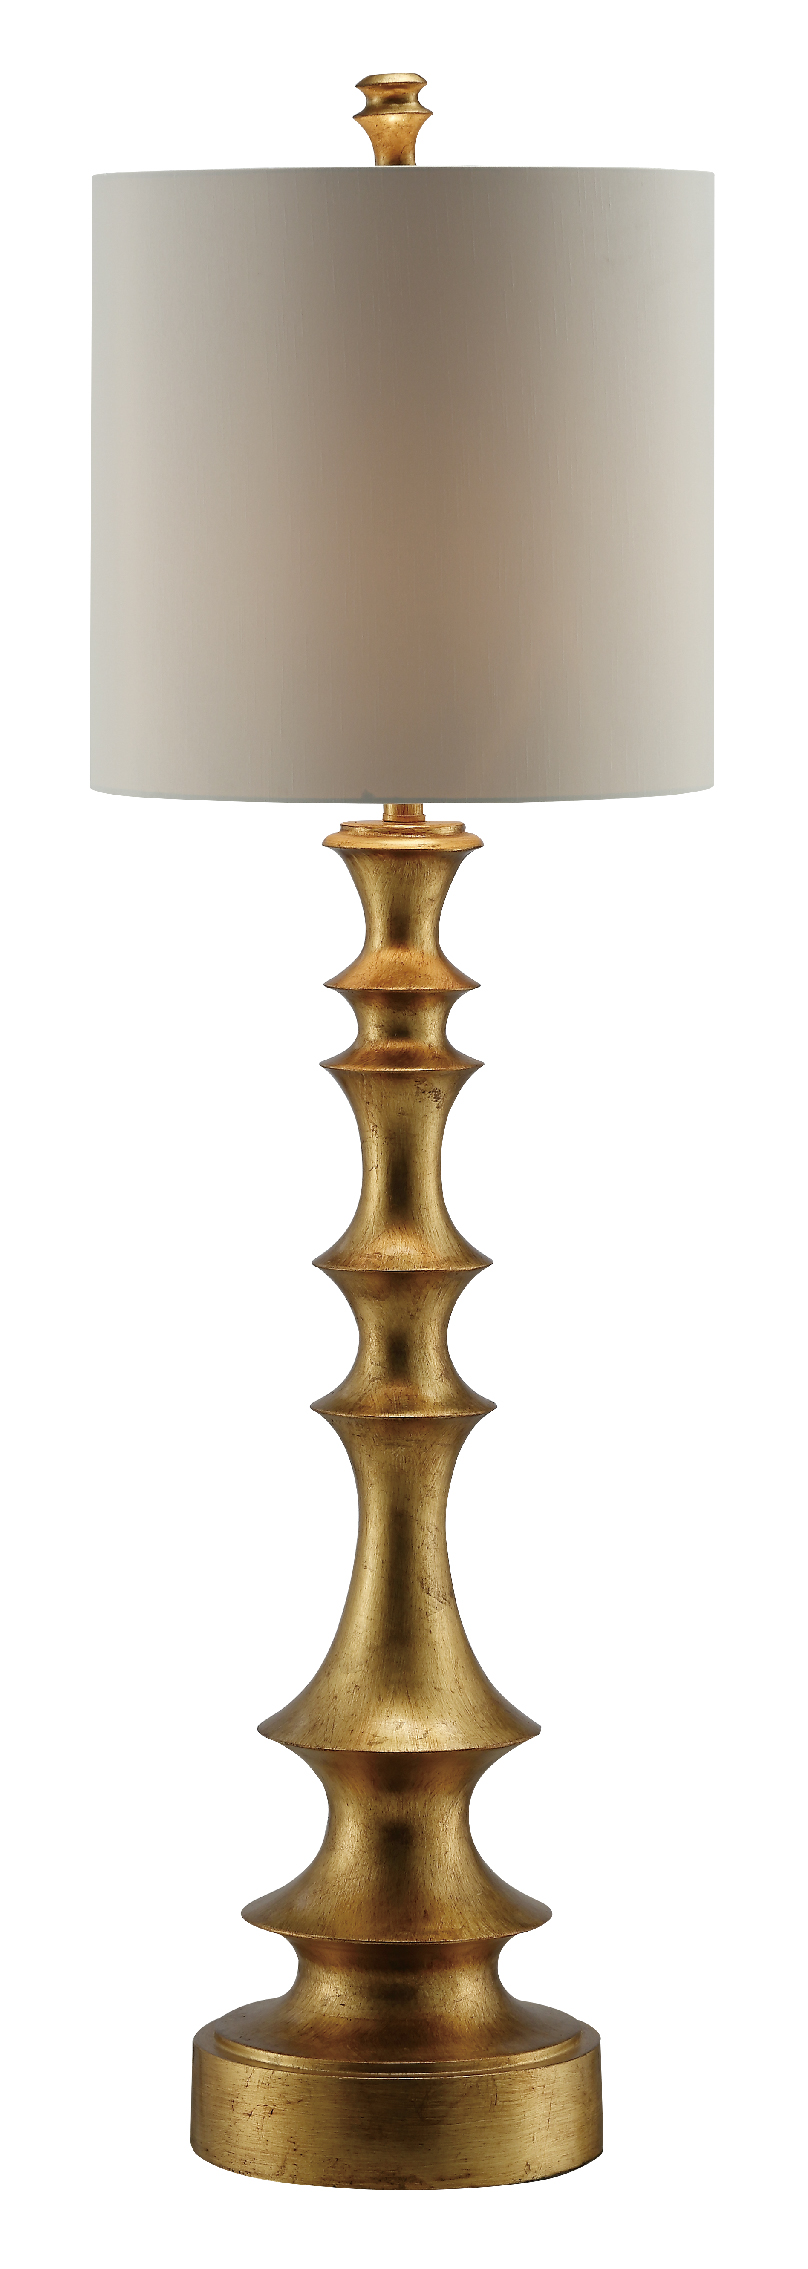 NEW Pair of Tall Gold Spindle Lamps